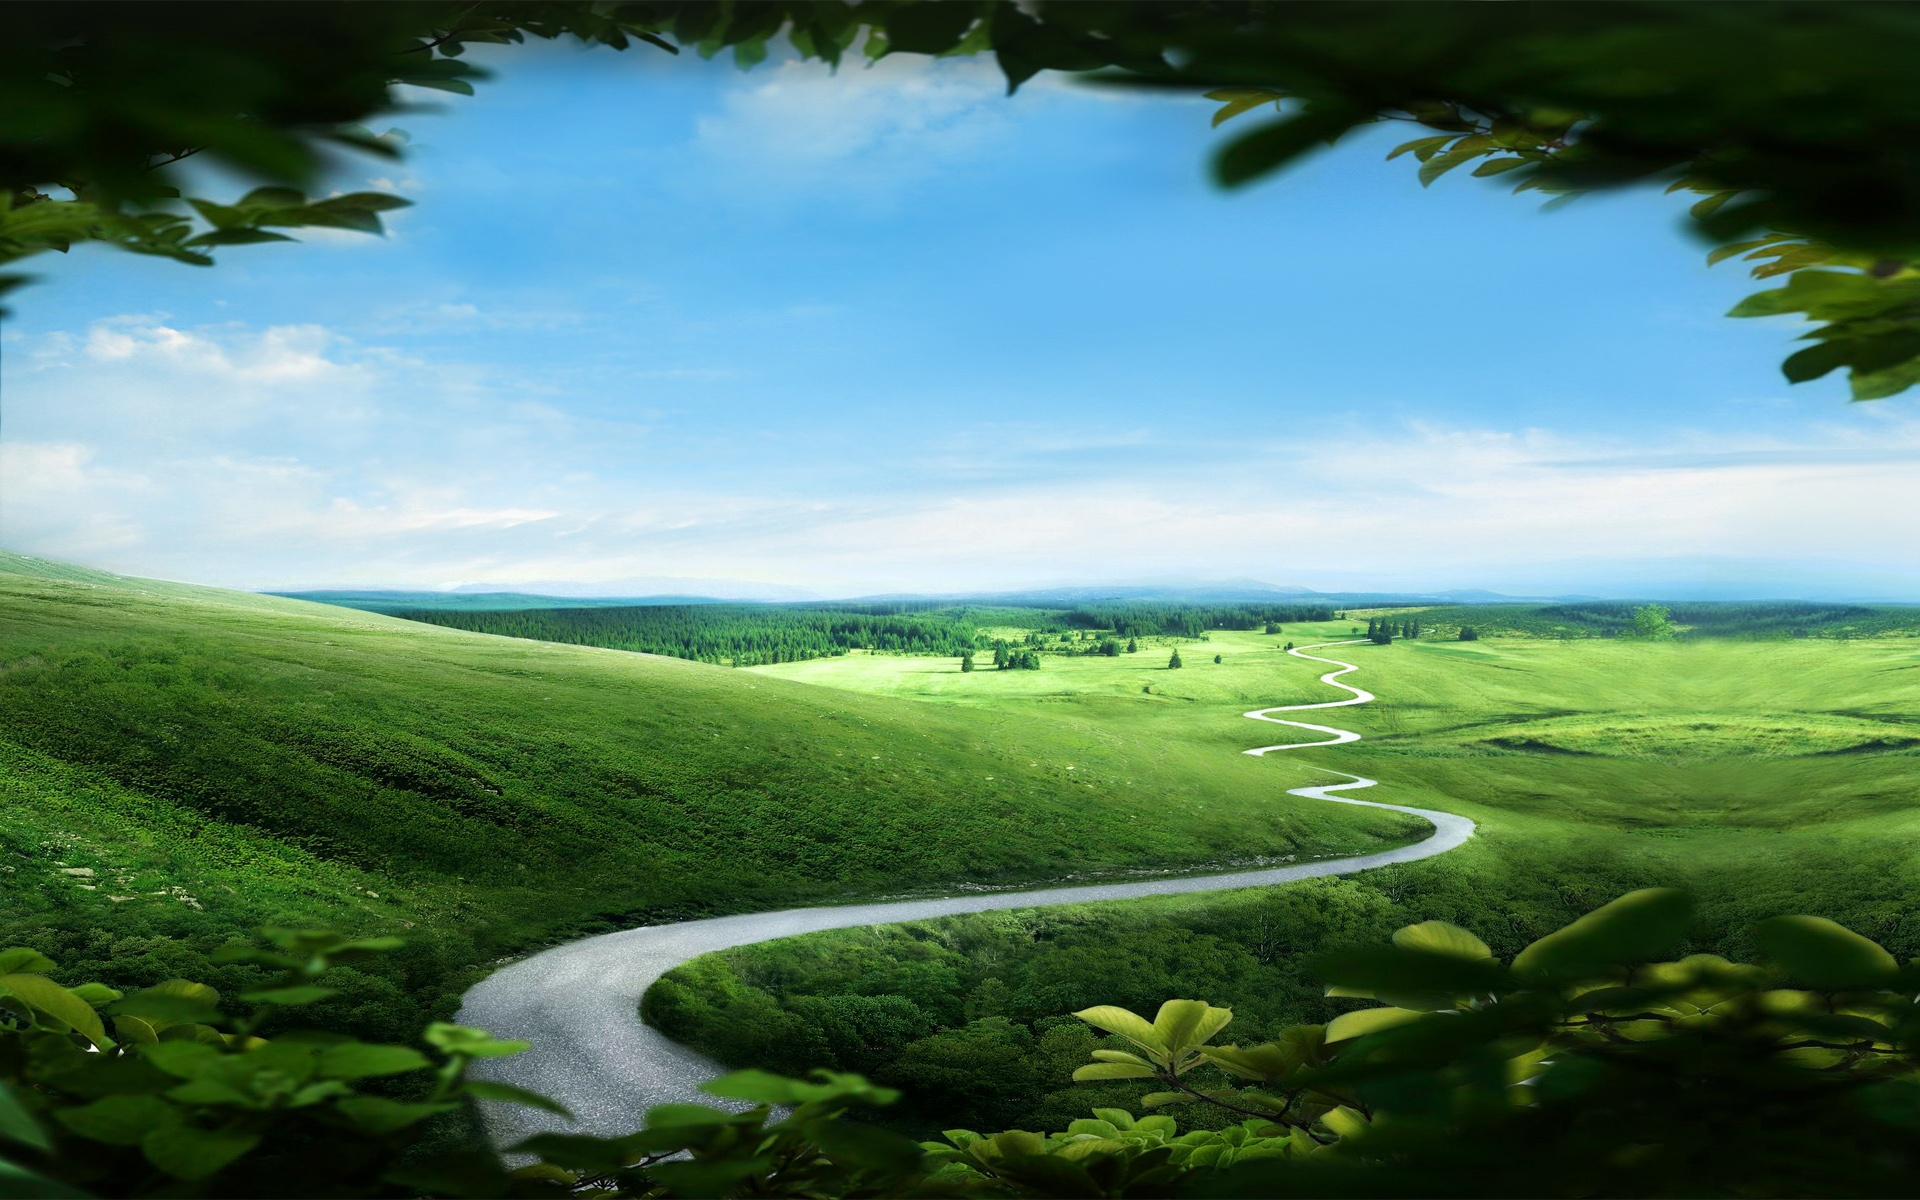 Path Landscape Wallpapers in jpg format for free